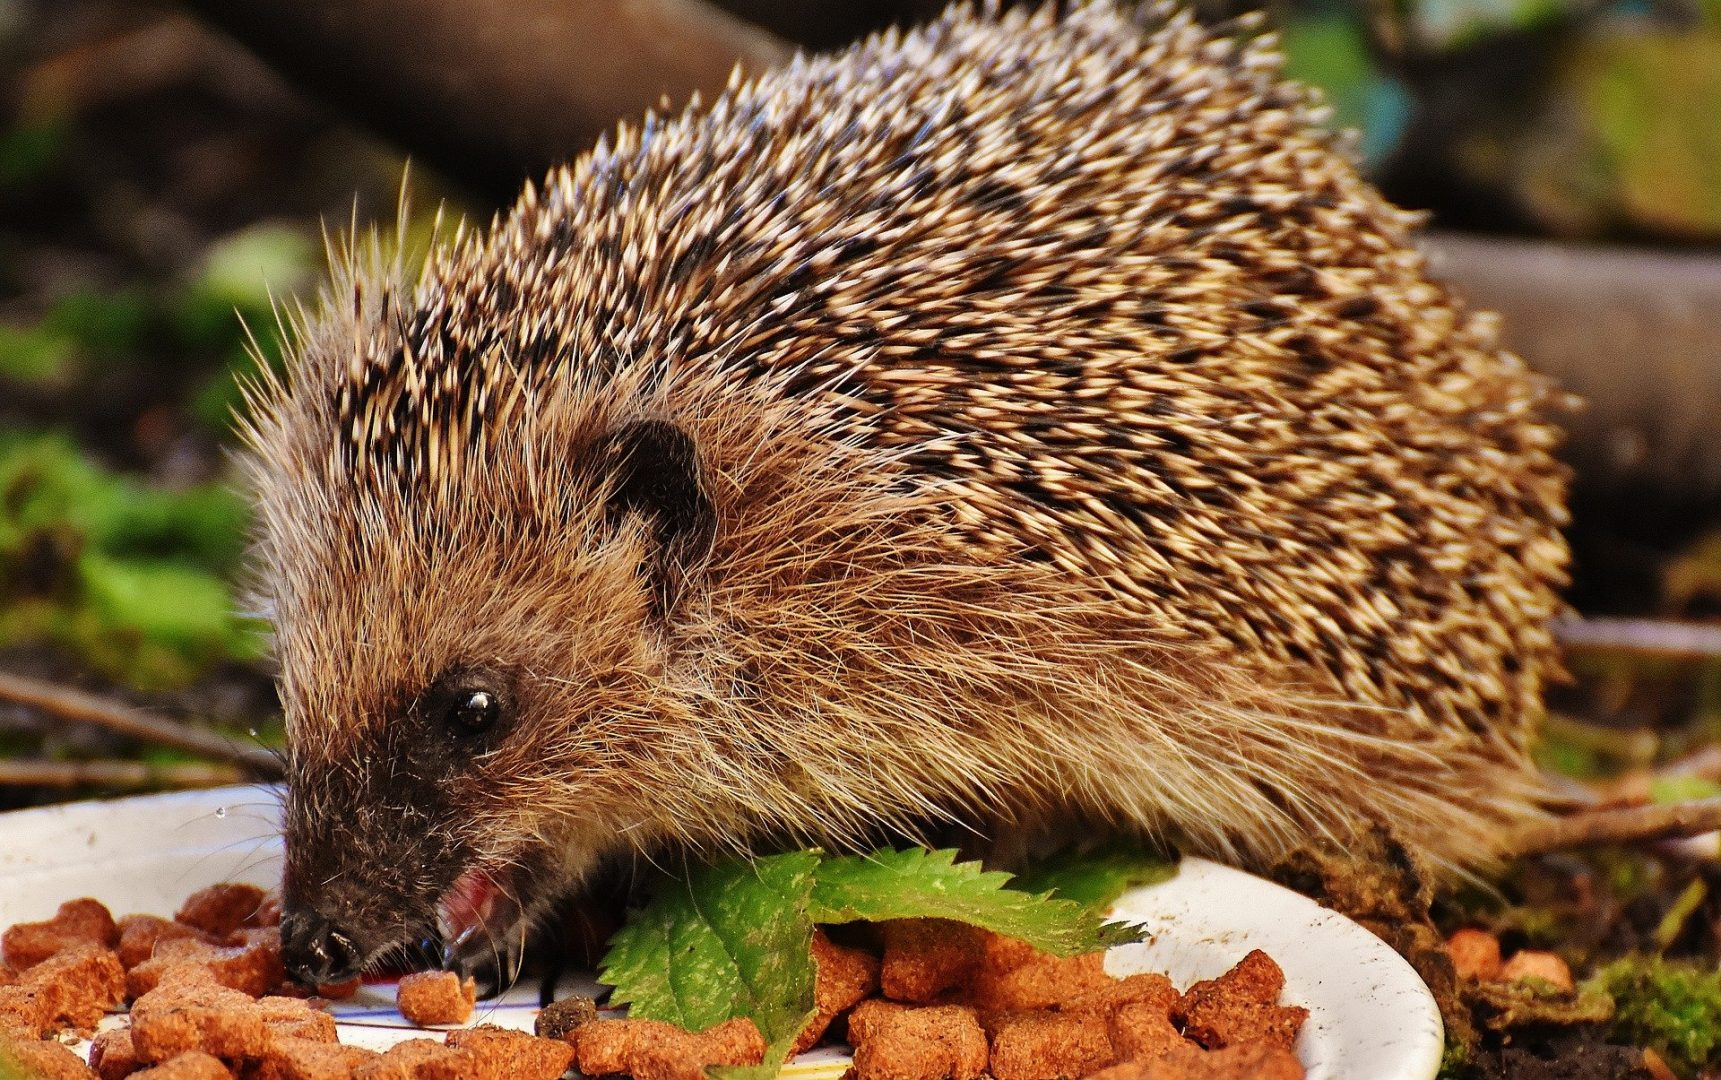 If this hedgehog was self employed this meal would count as an allowable expense